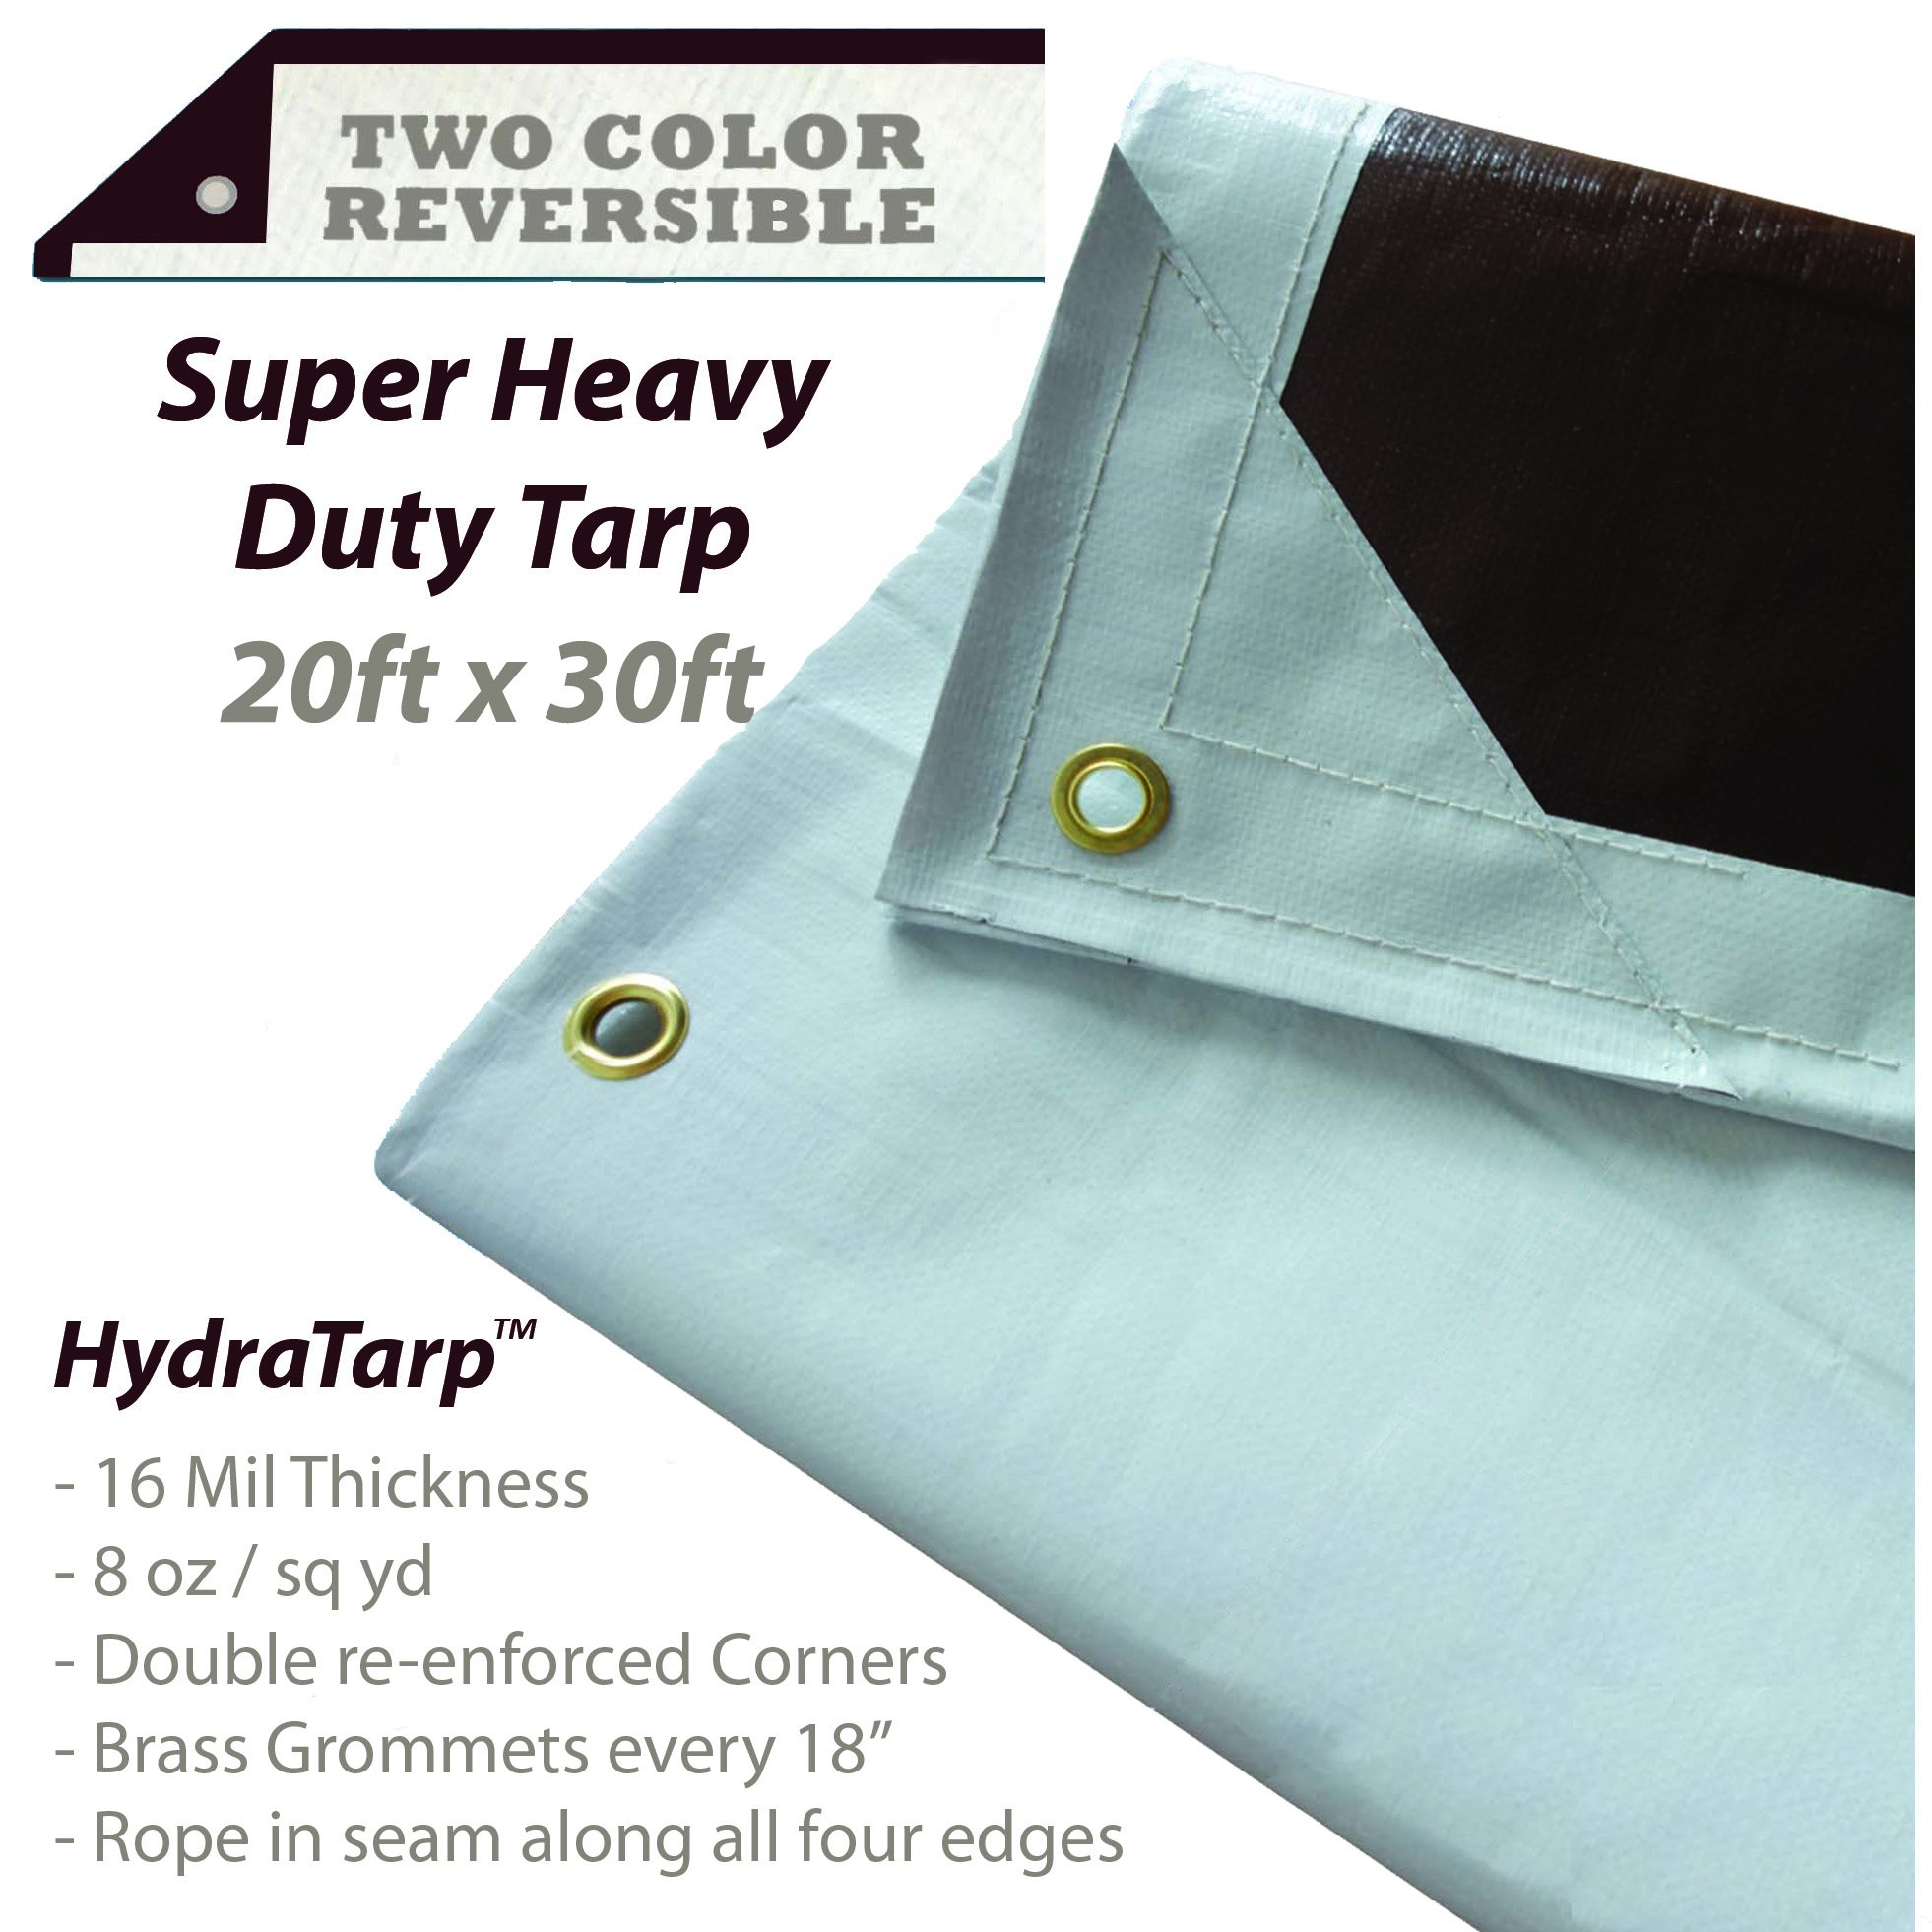 Watershed Innovations Super Heavy Duty Tarp, White/Brown by Watershed Innovations